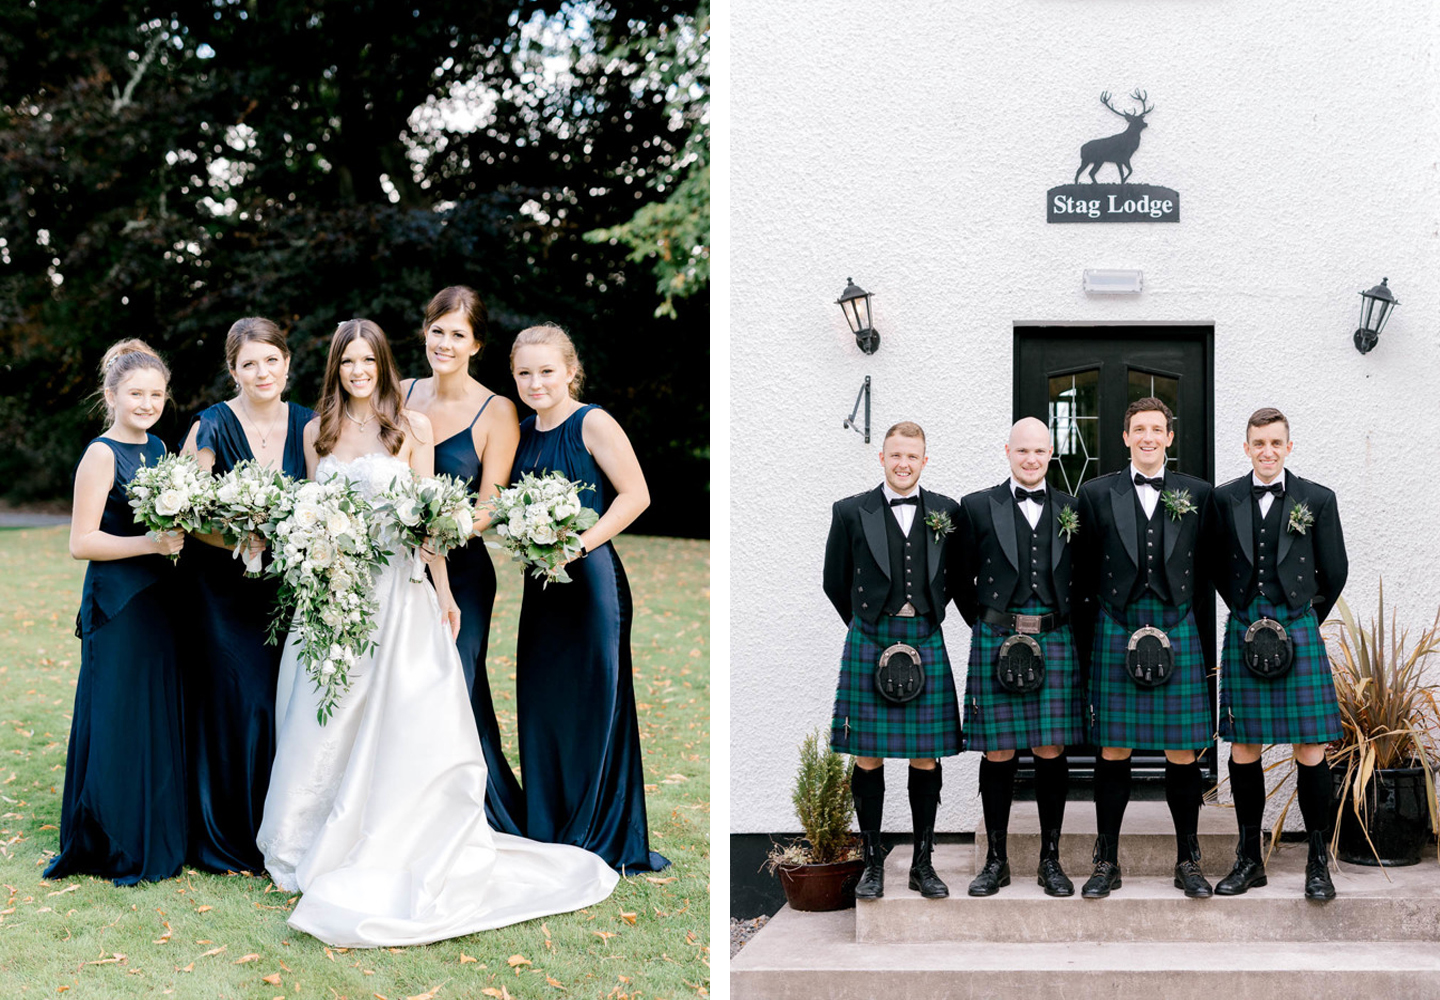 Real Wedding Stories | A Wedding in the Great Scottish Outdoors - The Foil Invite Company